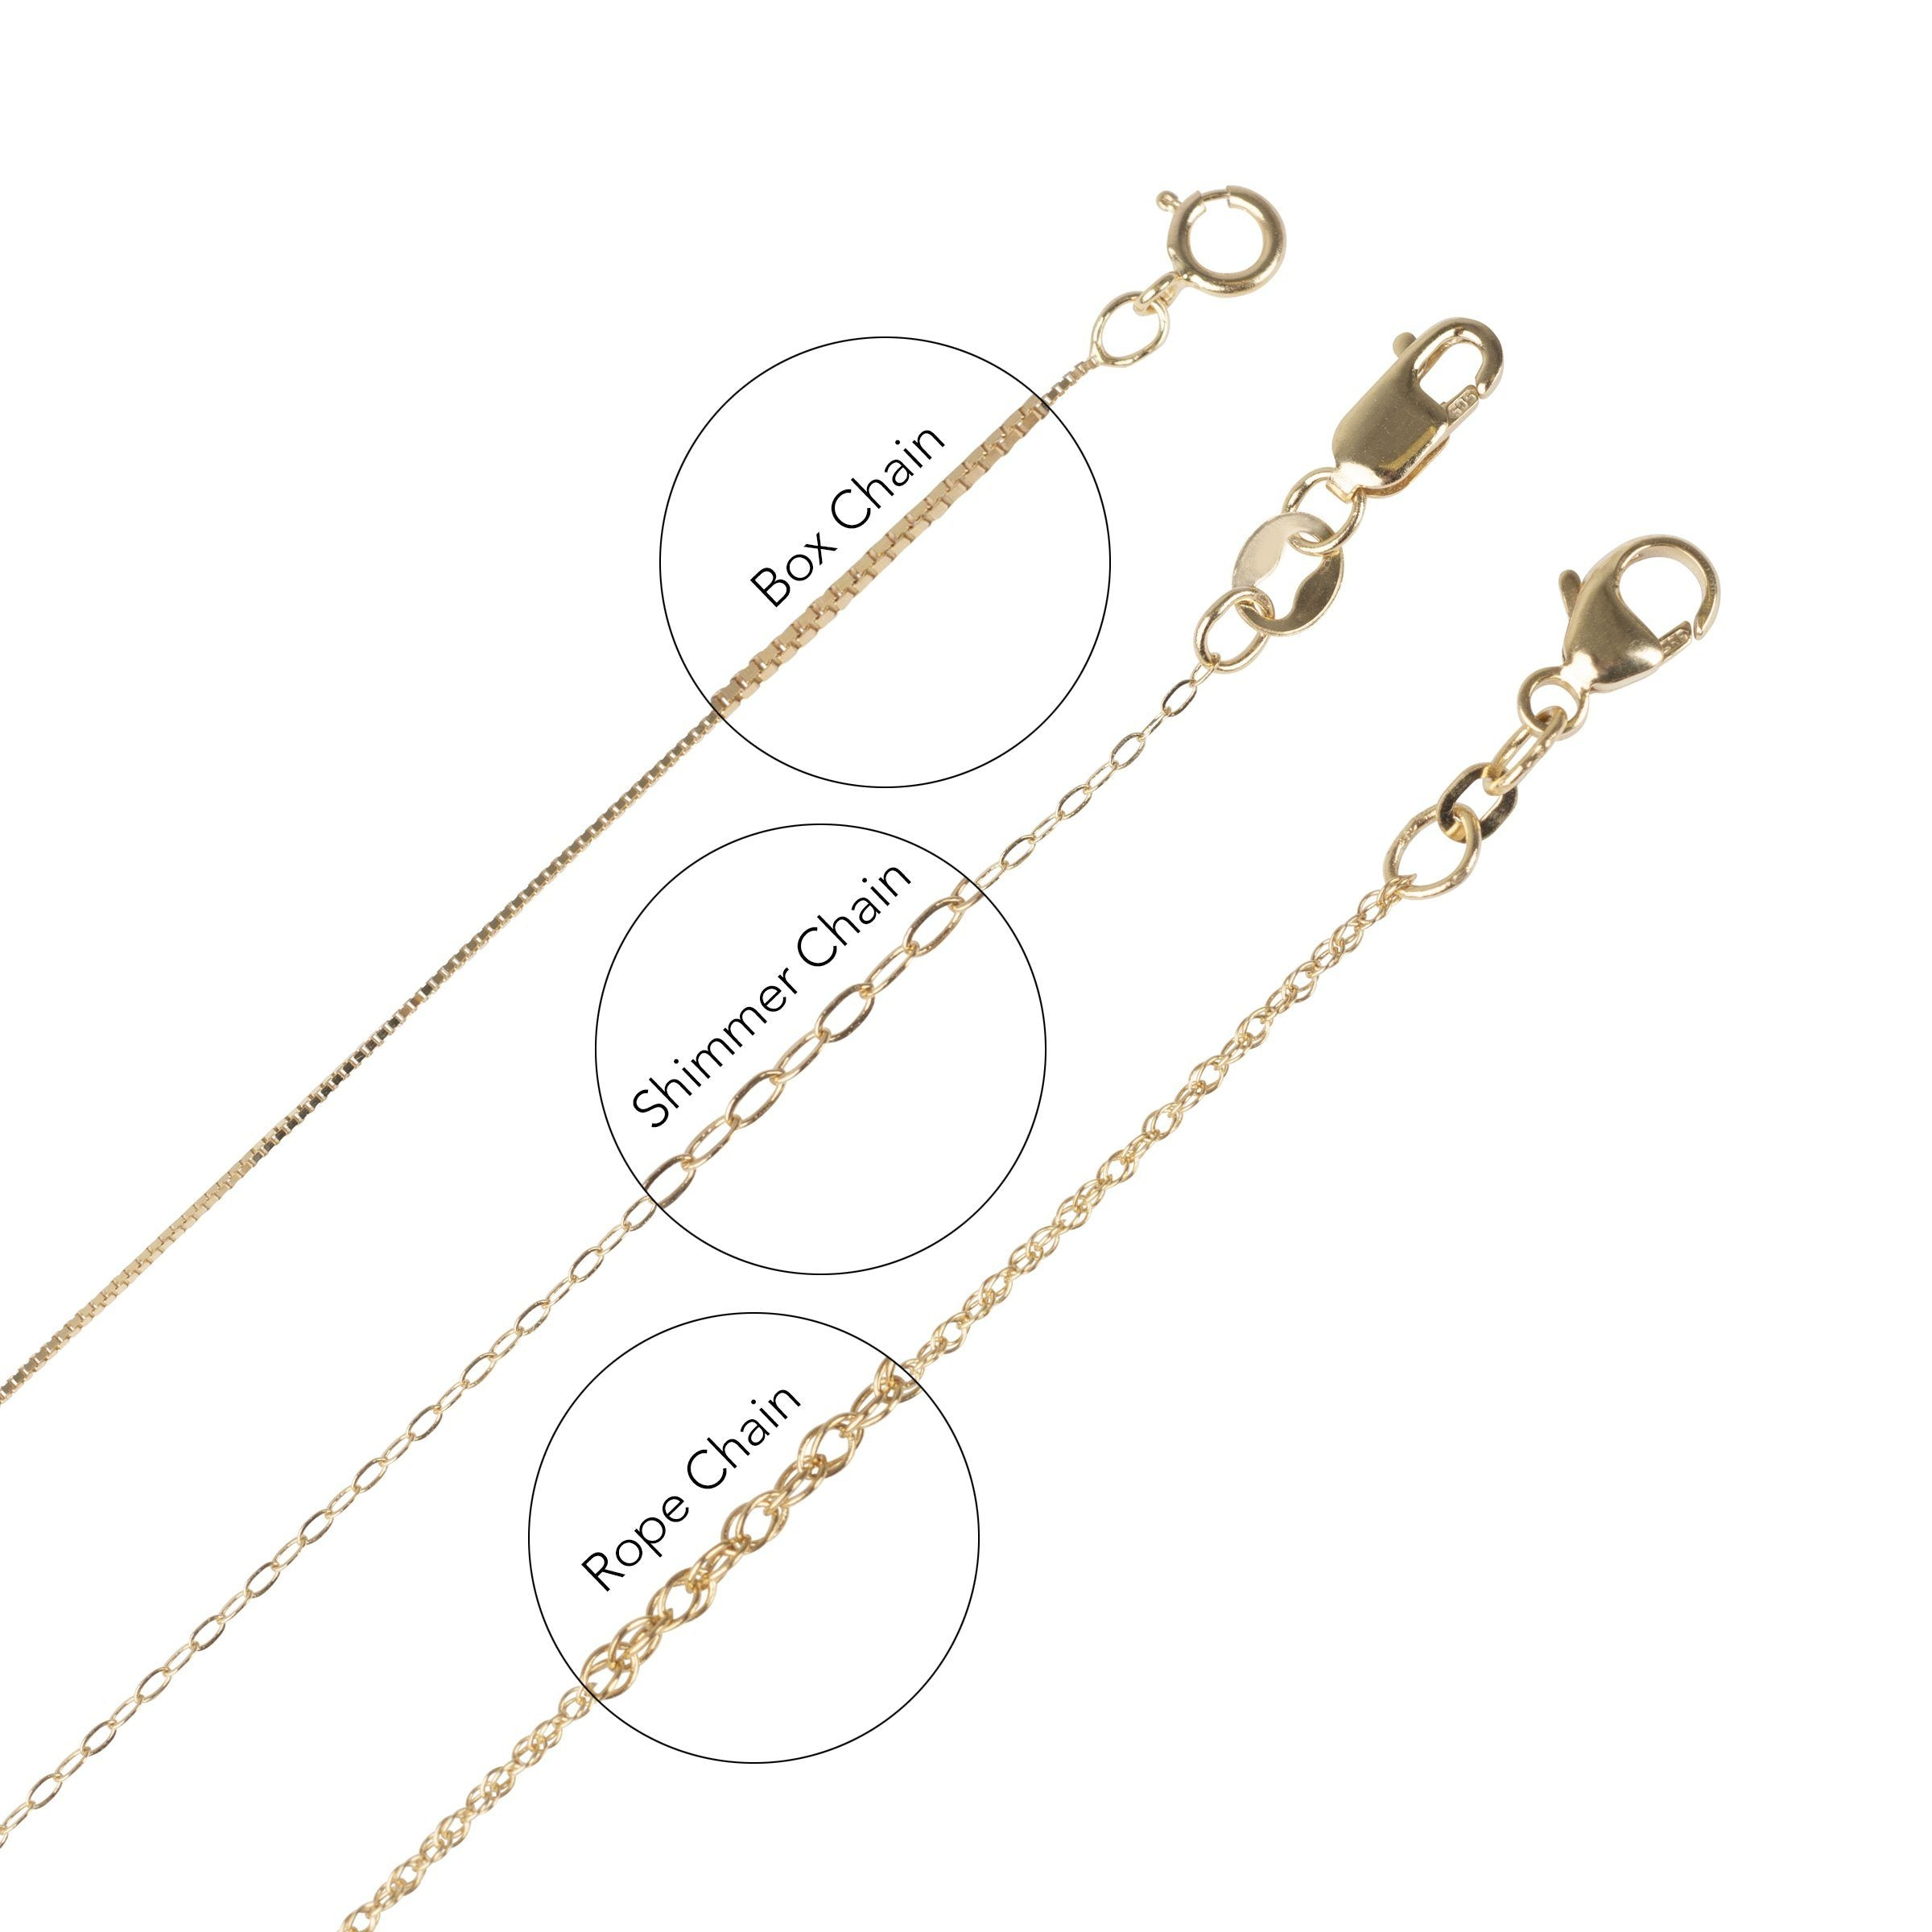 Nobility Collection 8.0-8.5 mm Akoya Pearl and Diamond Pendant